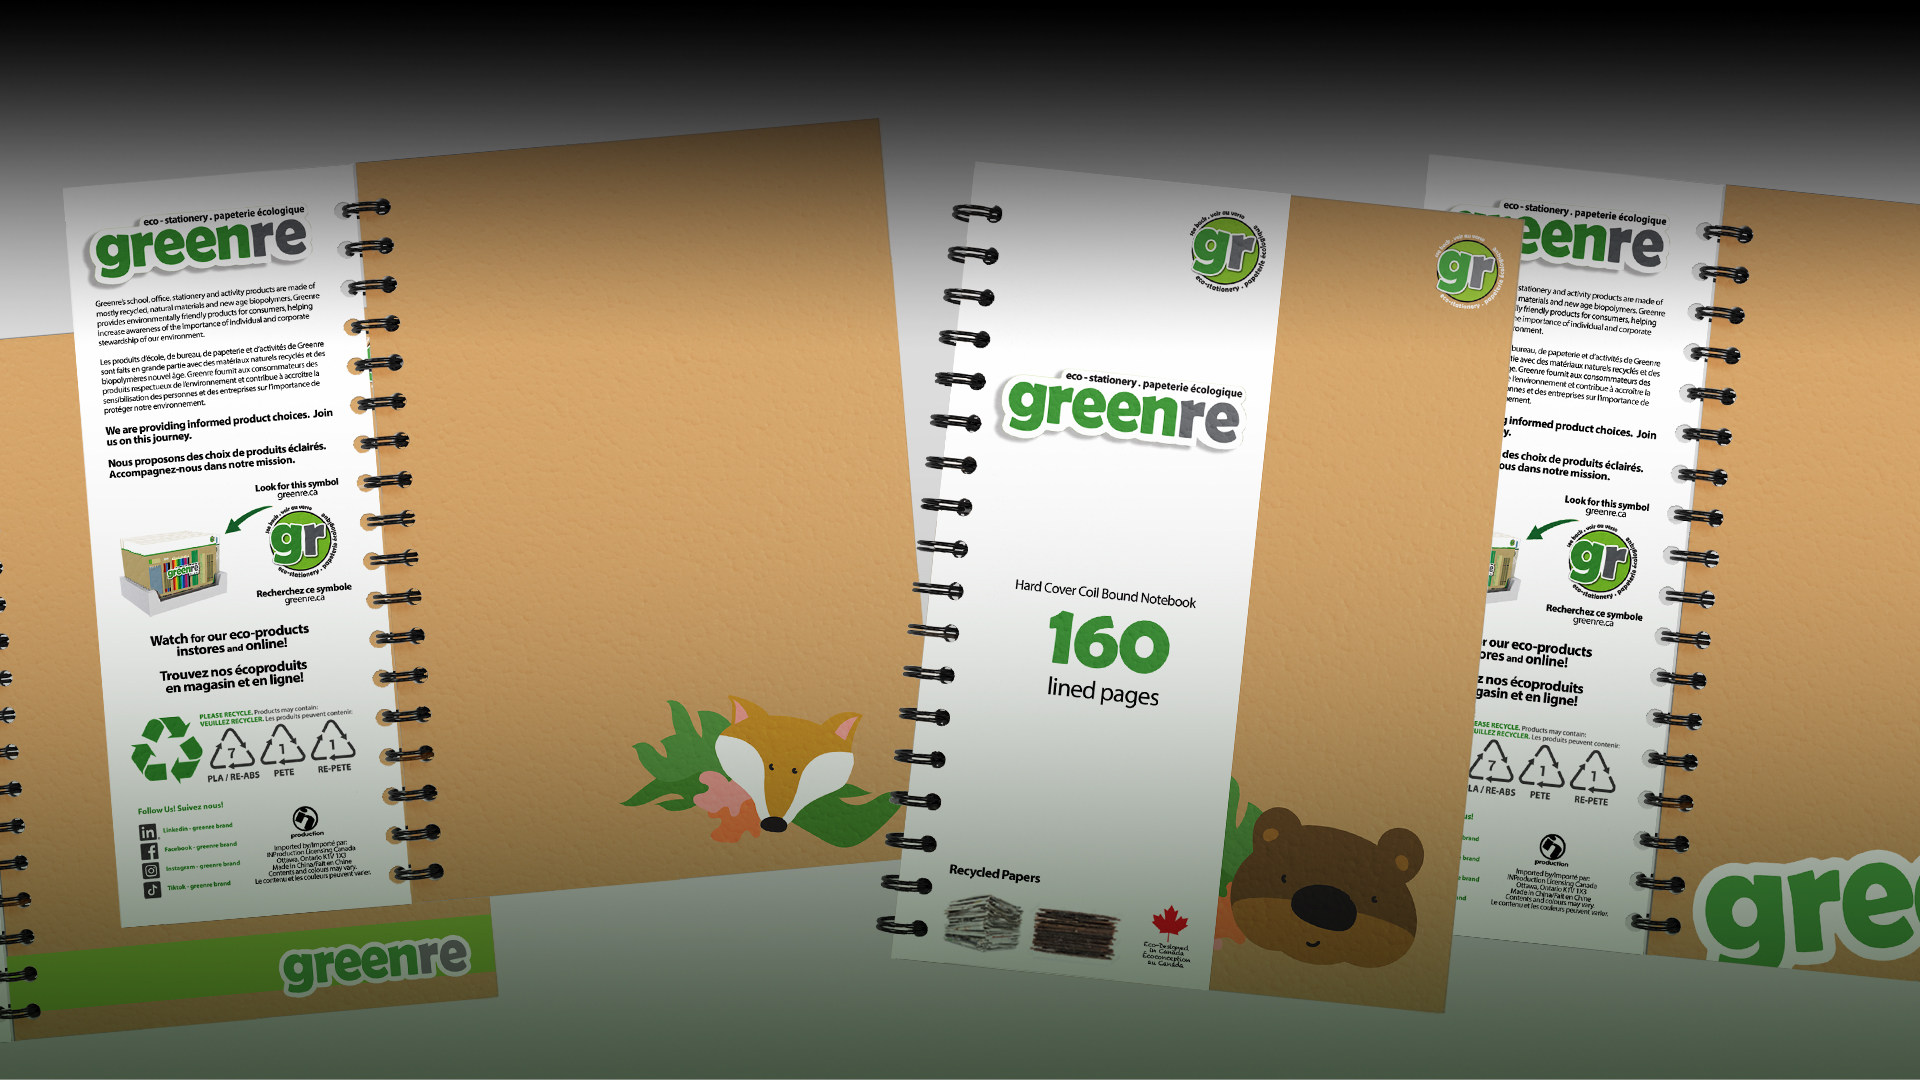 A collection of greenre branded and woodland animal branded notebooks.